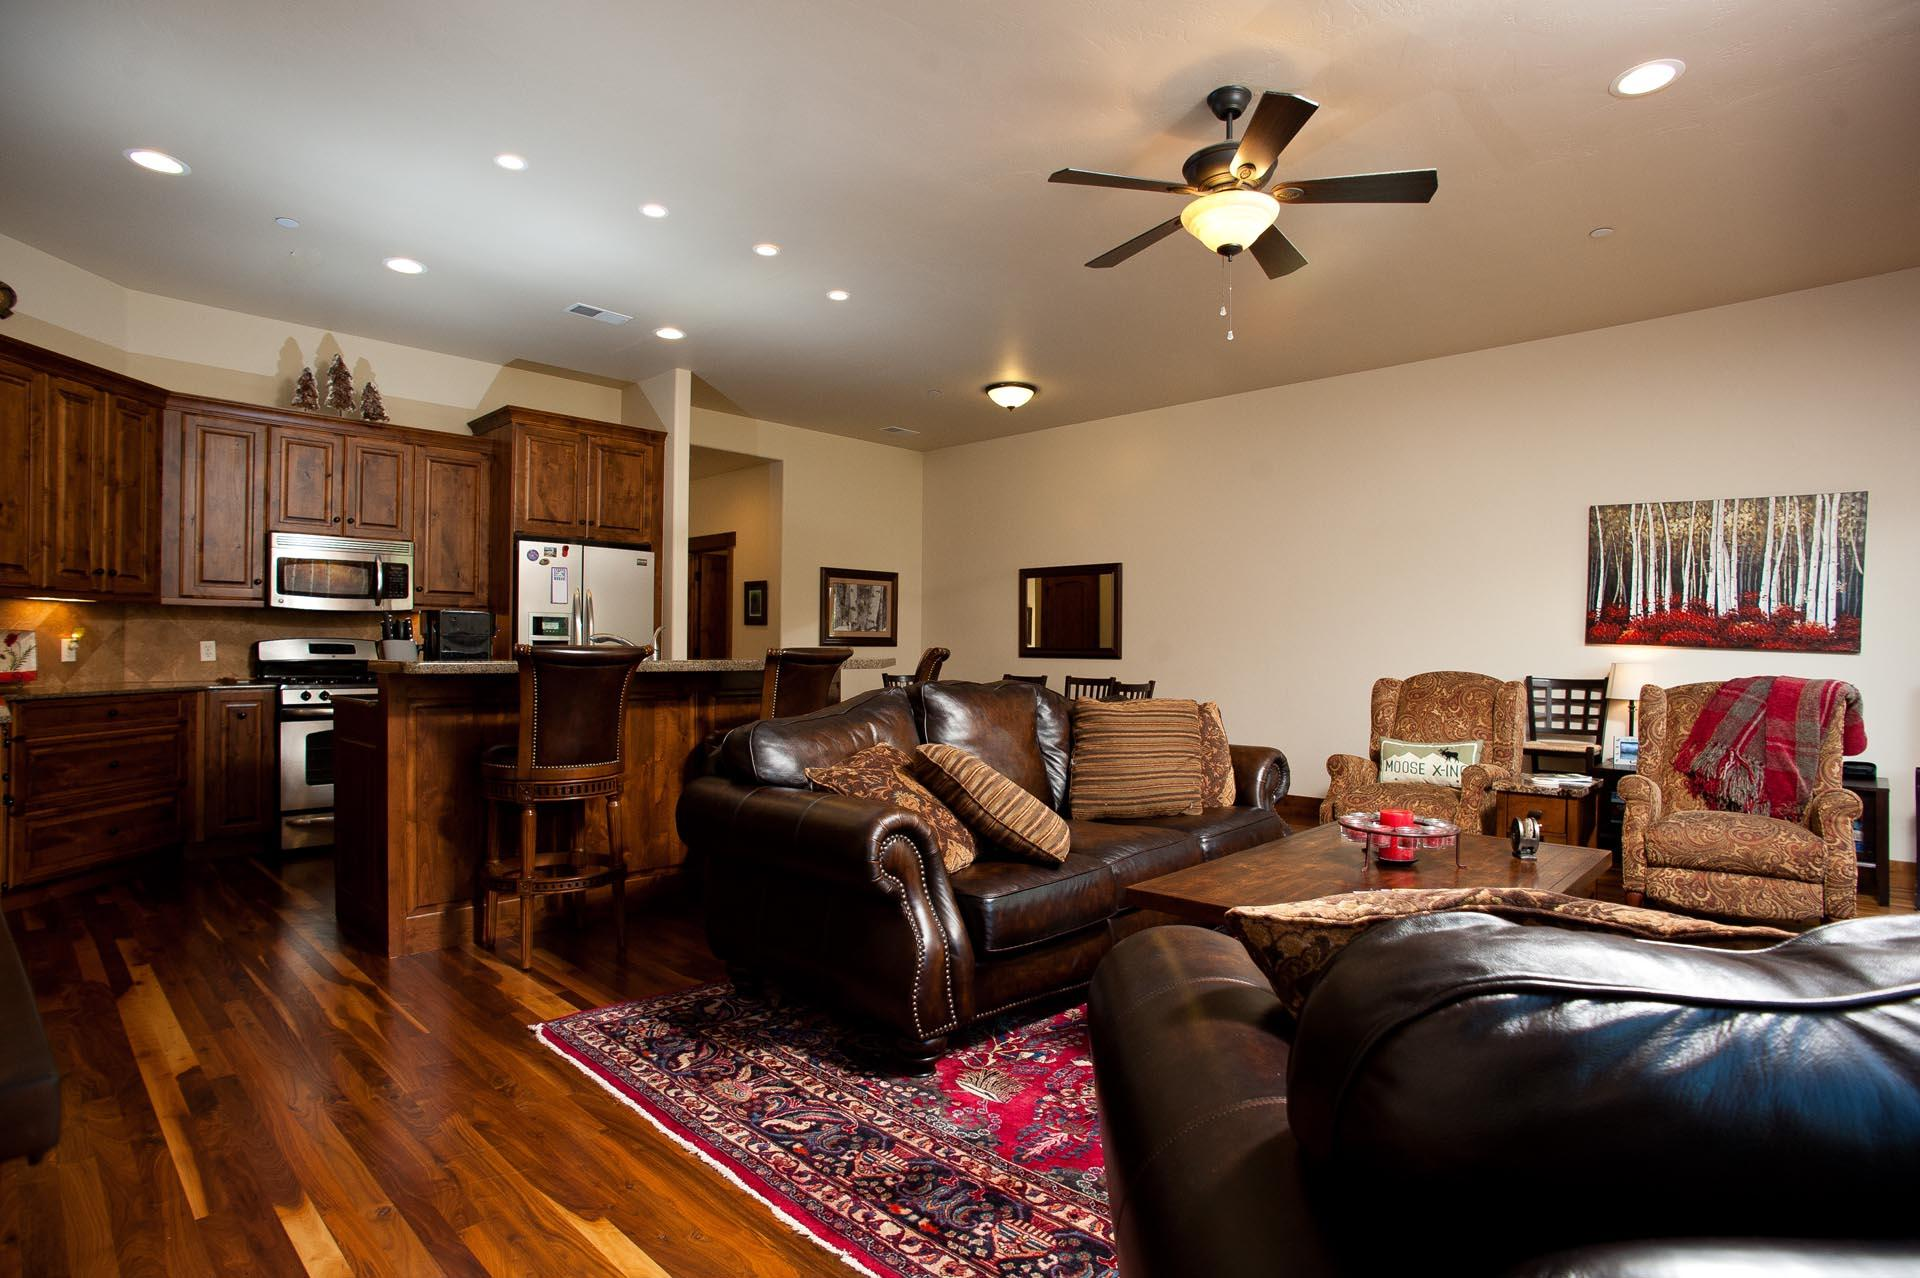 Luxury Townhome - 4 Miles from Downtown Durango - Central AC